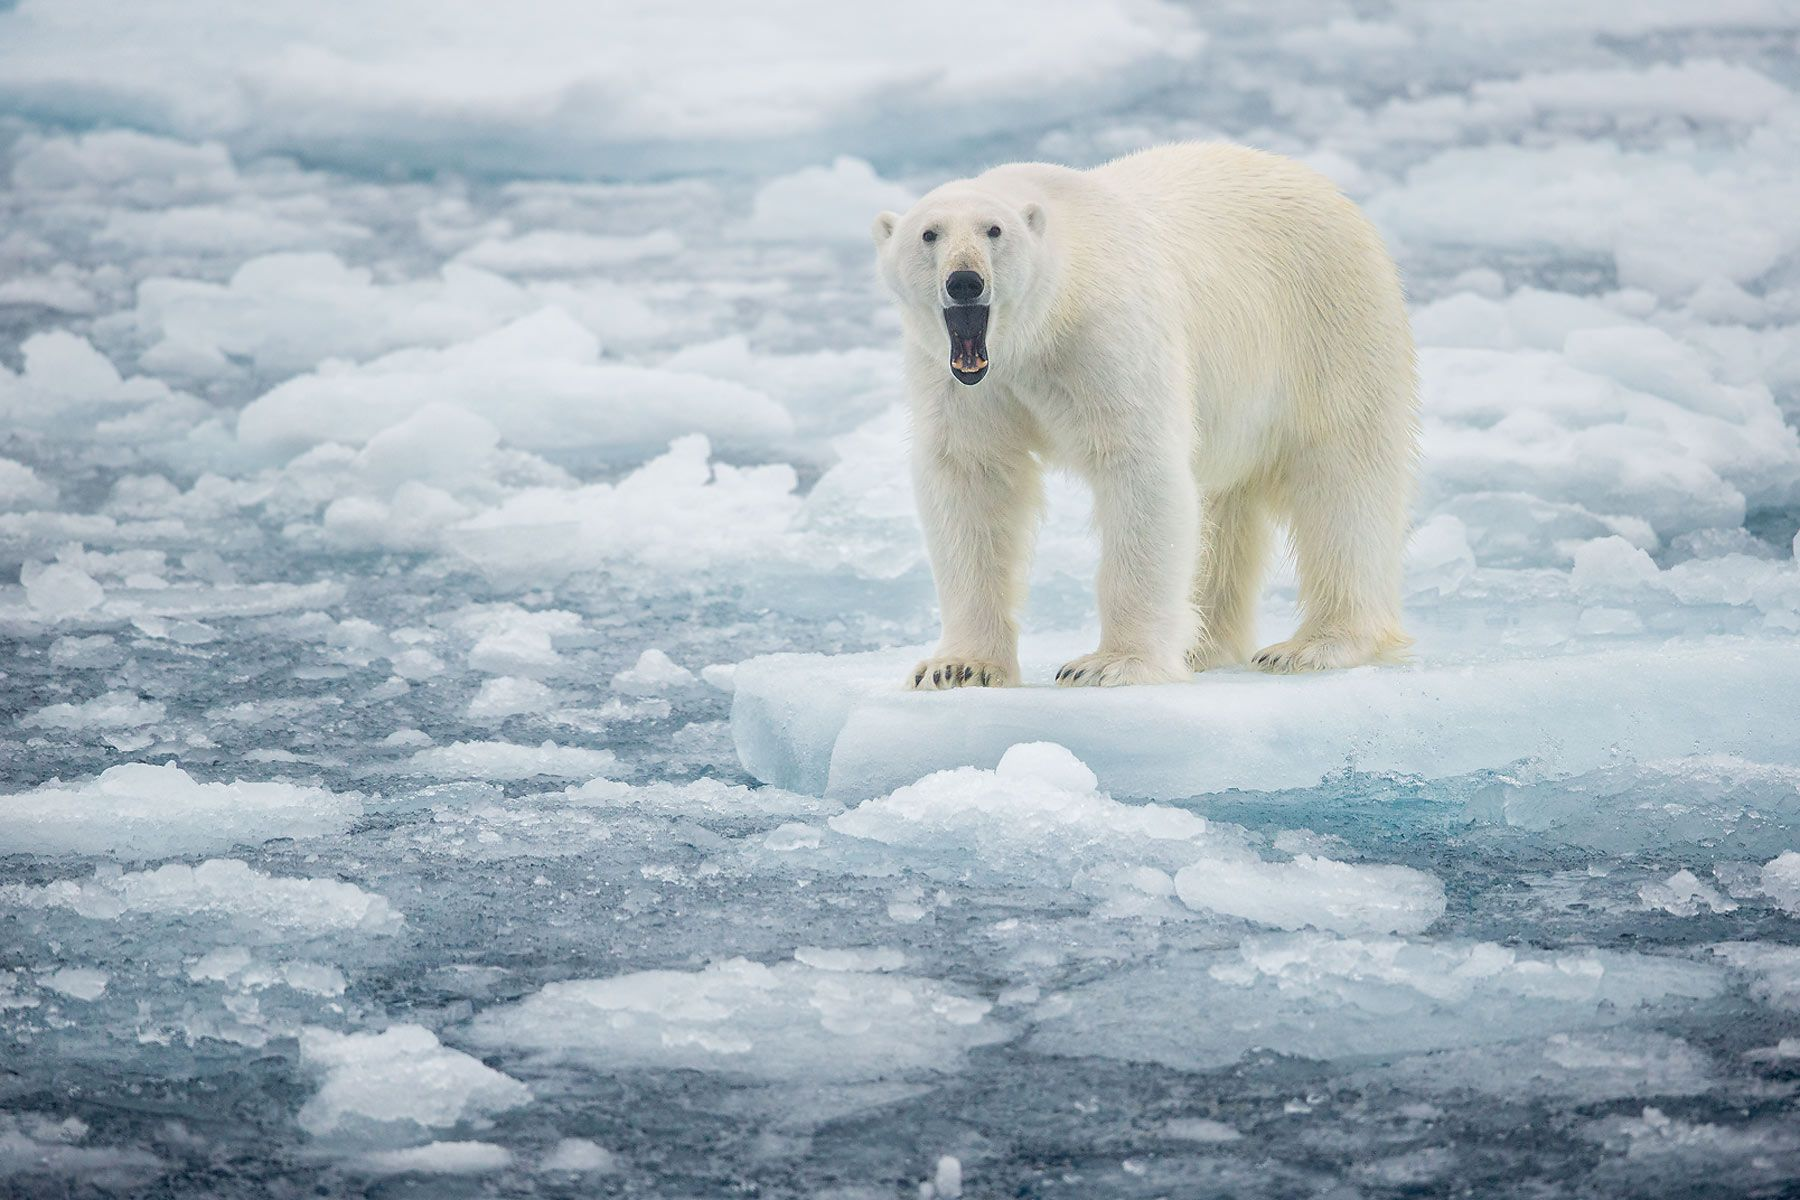 Polar-bear-on-sea-ice-yawning_B8R4821-Sea-ice-at-81-degree-North,-Svalbard,-Arctic.jpg